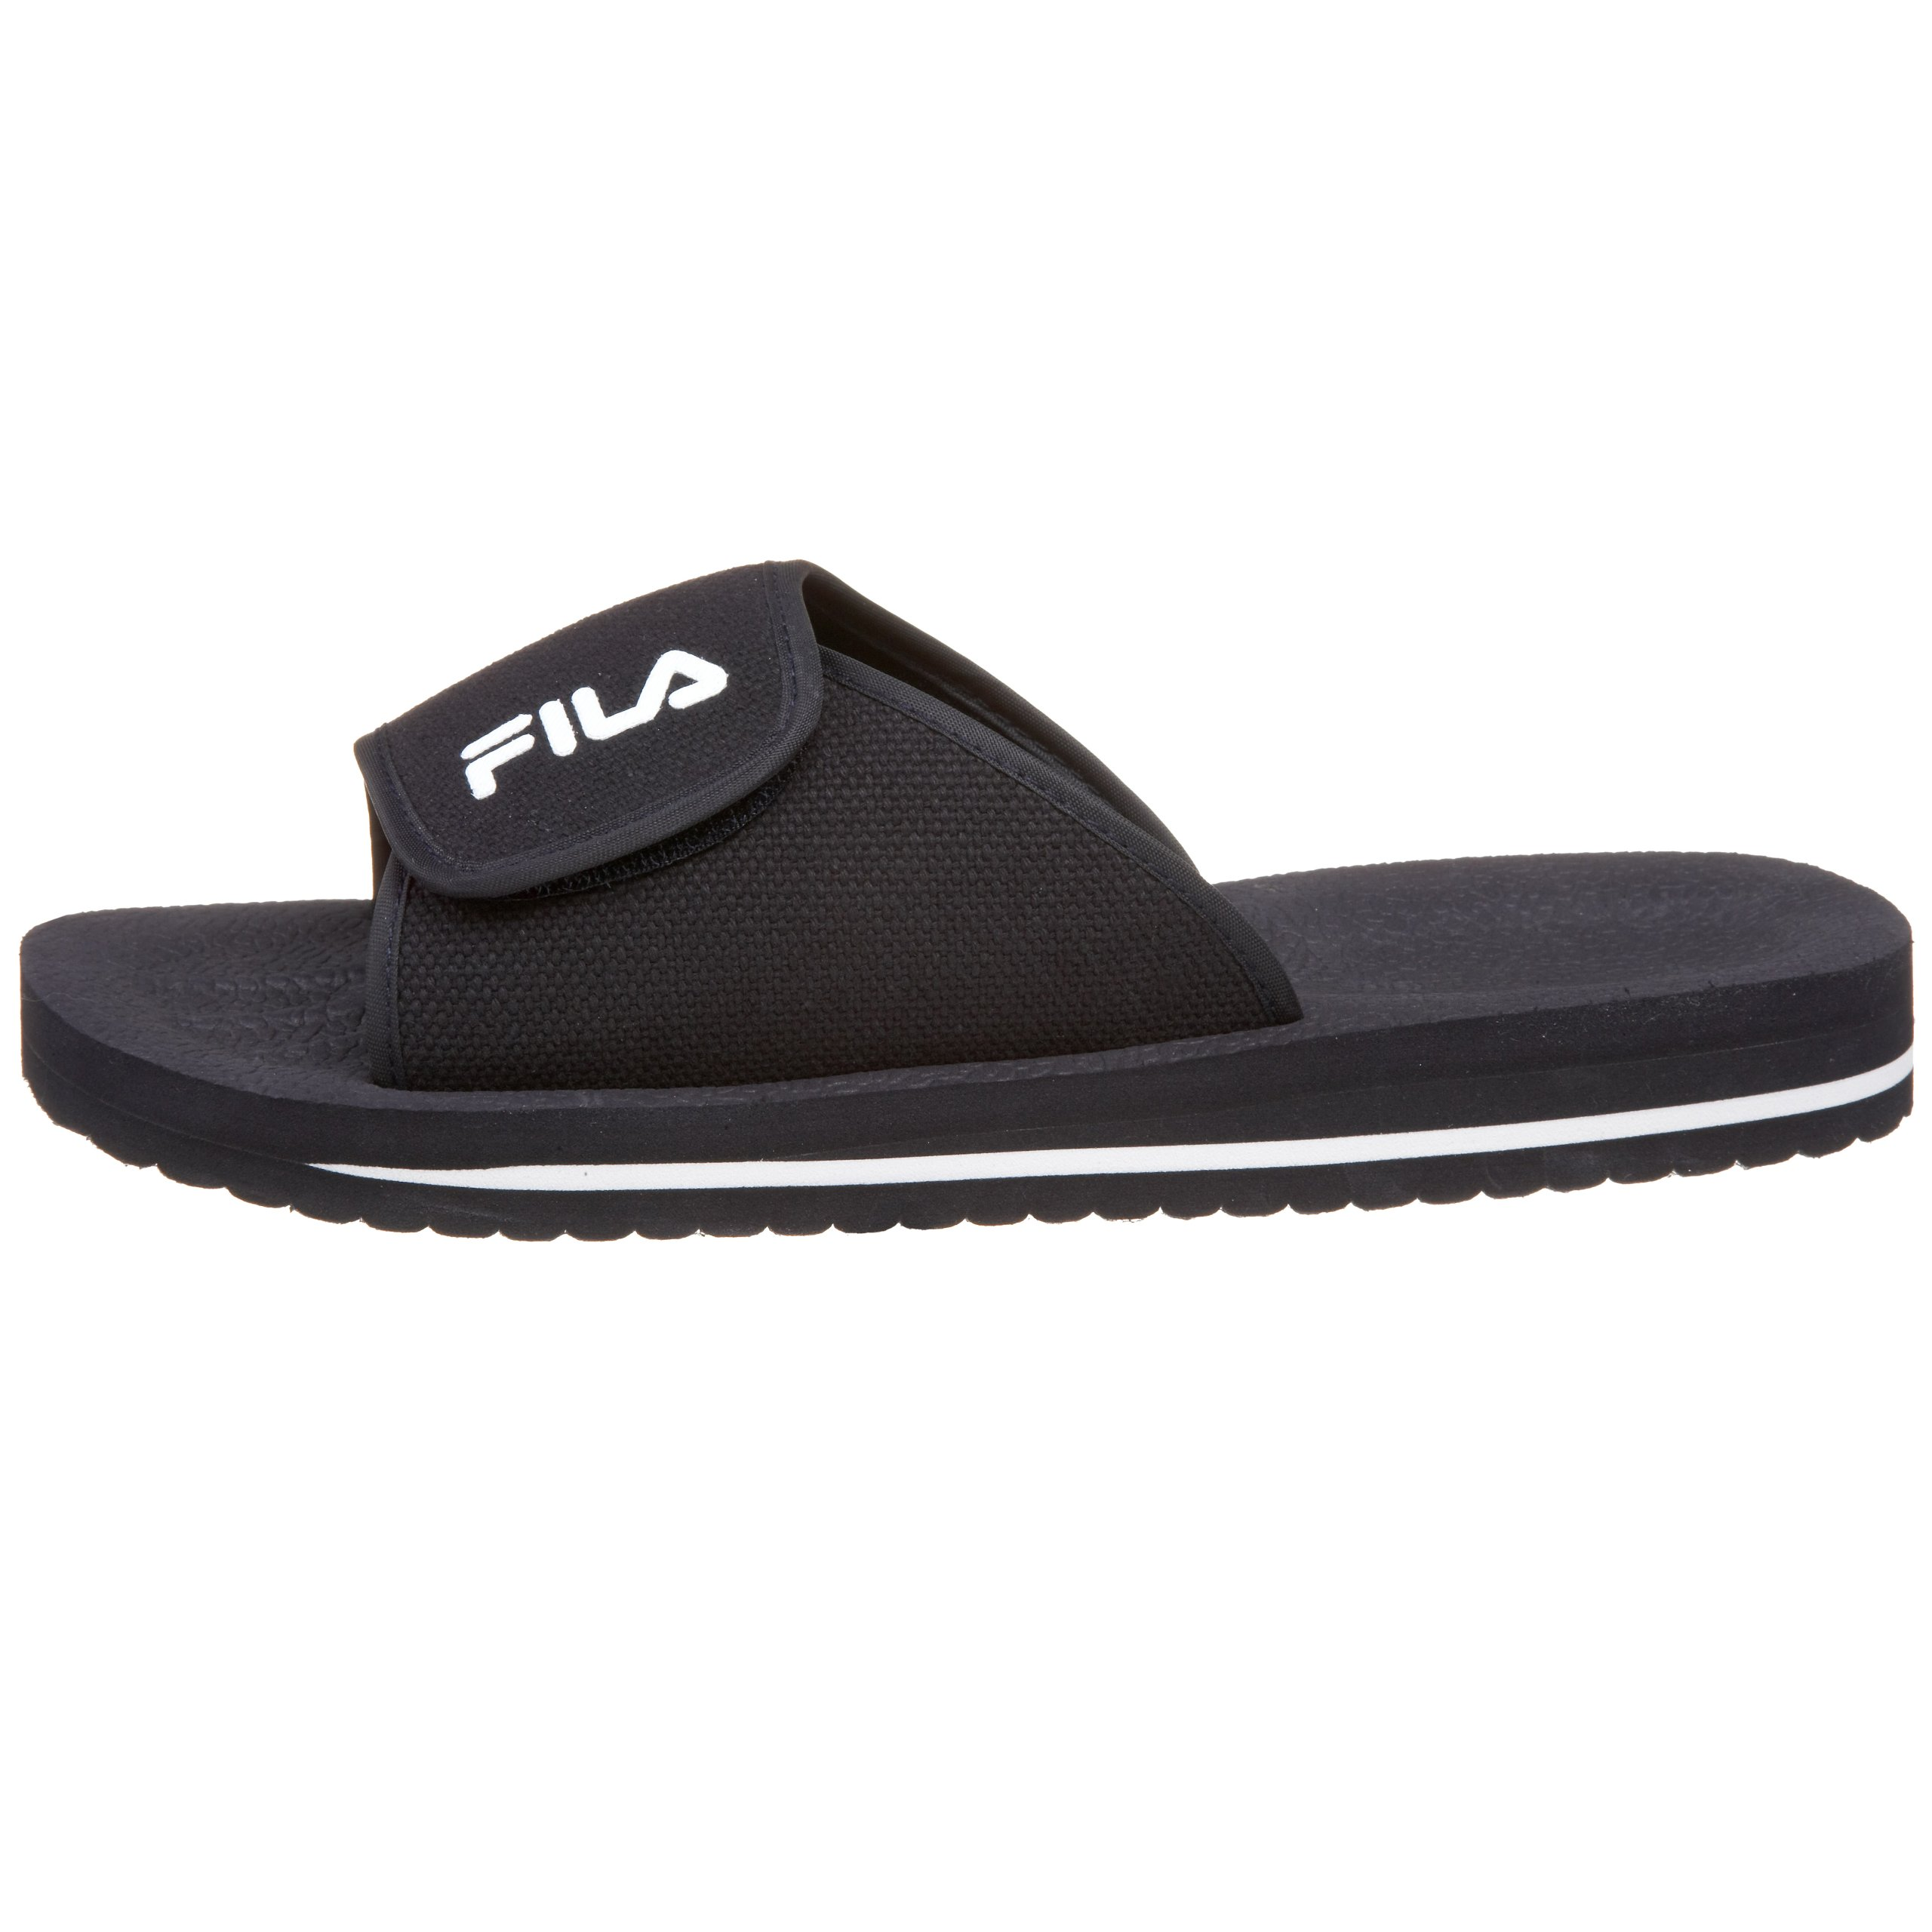 Fila Men's Slip On Sandal,Peacoat/White,12 M US by Fila (Image #5)